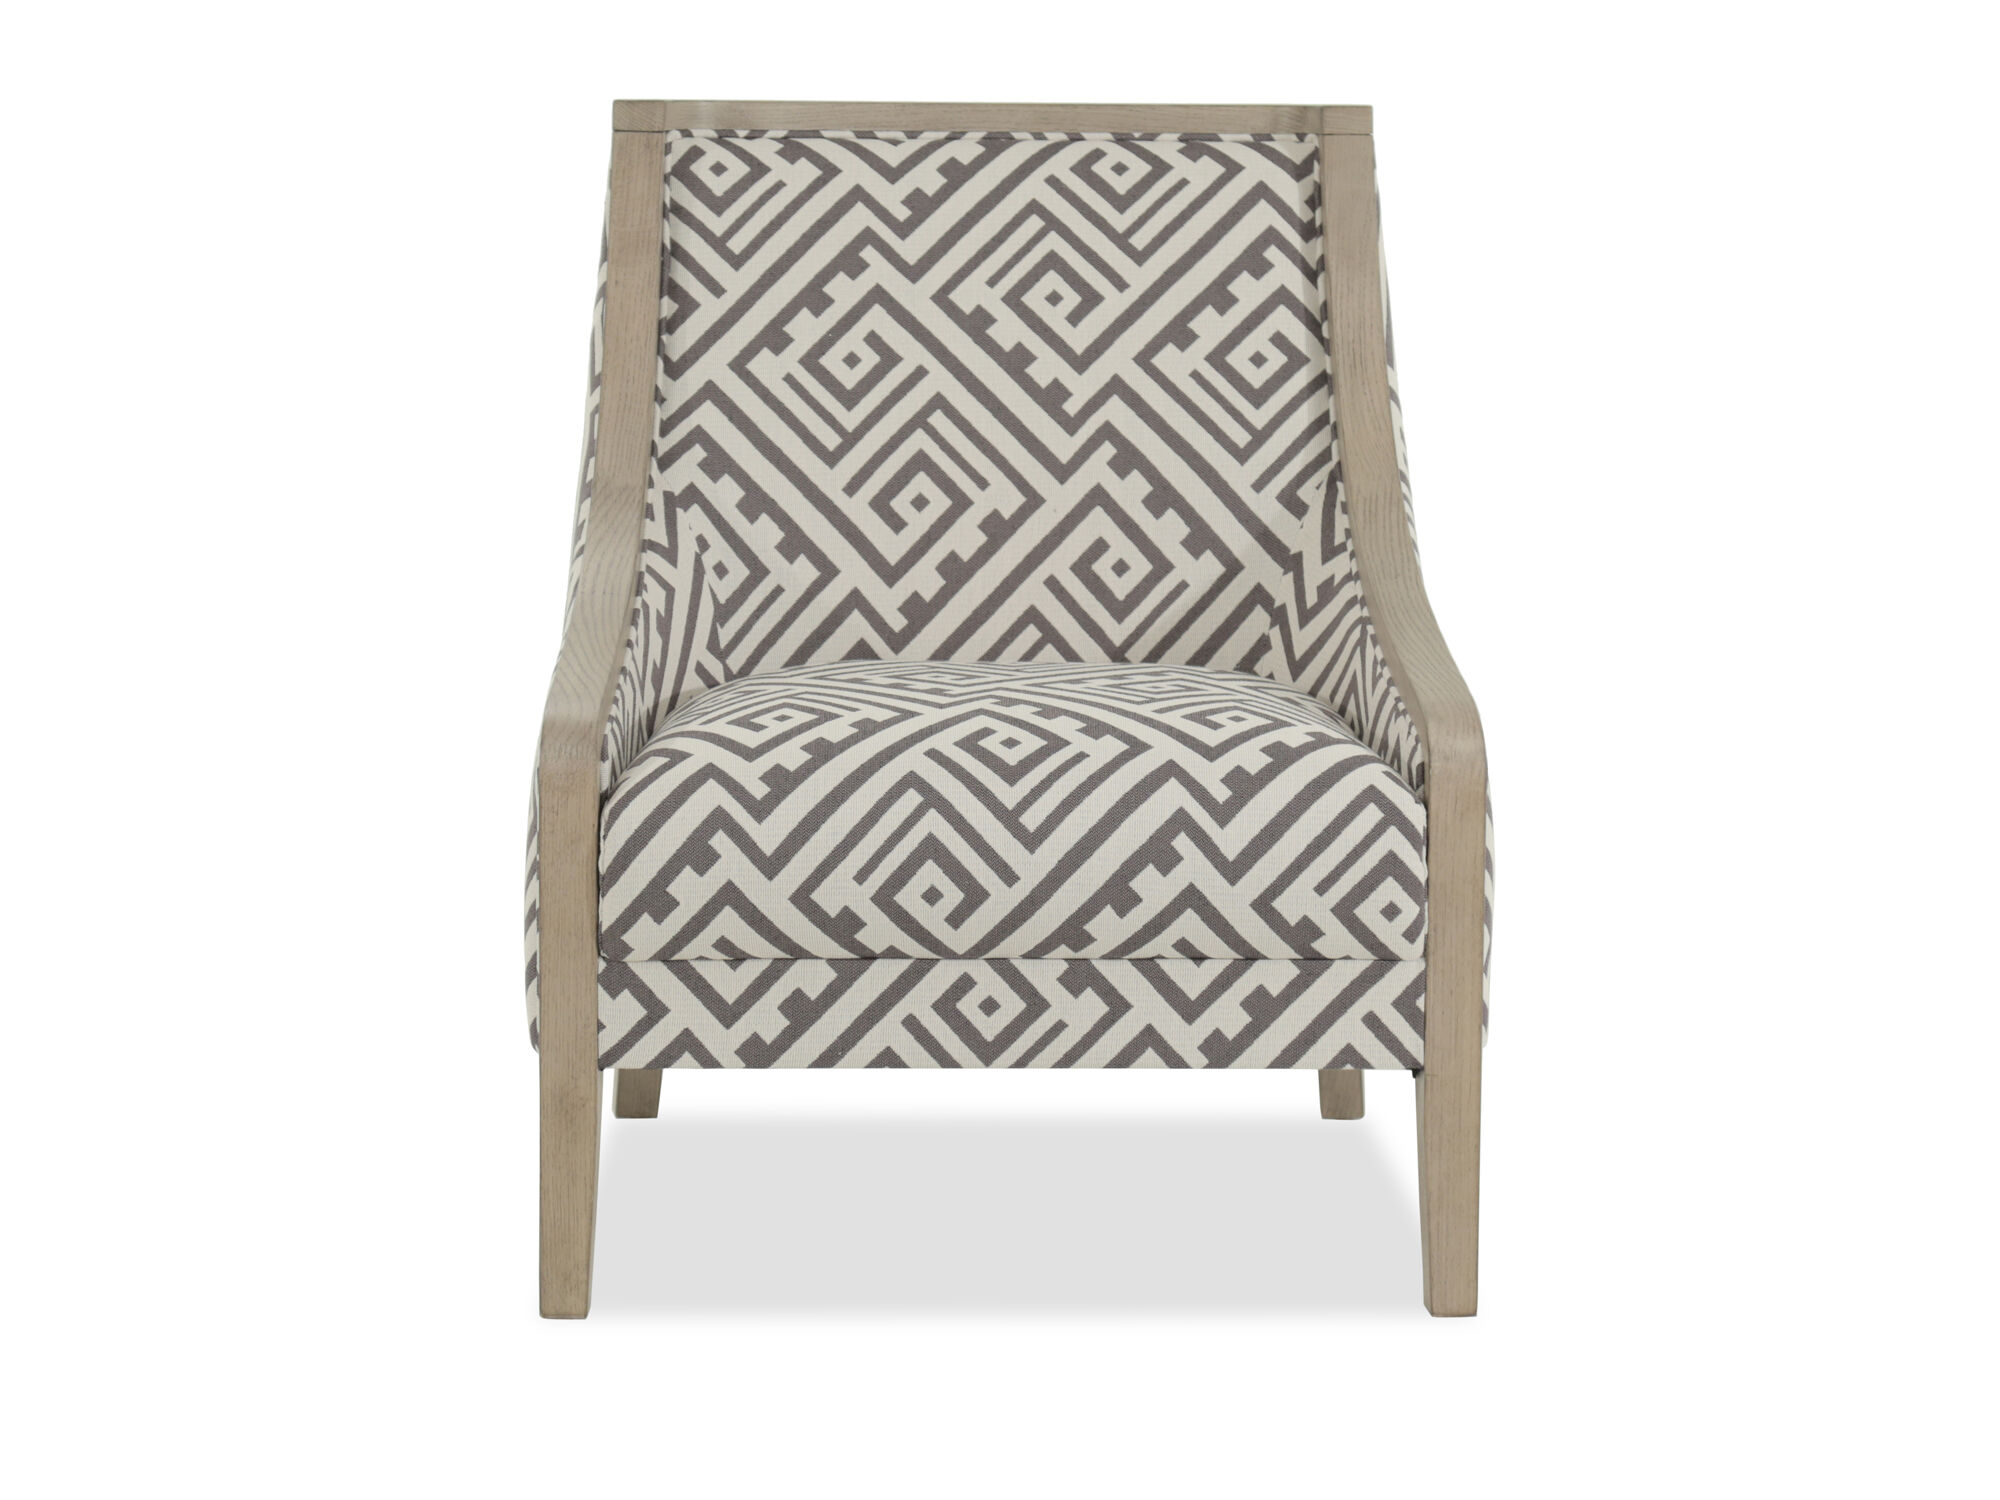 Images Geometric Patterned Contemporary 28u0026quot; Accent Chair Geometric  Patterned Contemporary 28u0026quot; Accent Chair